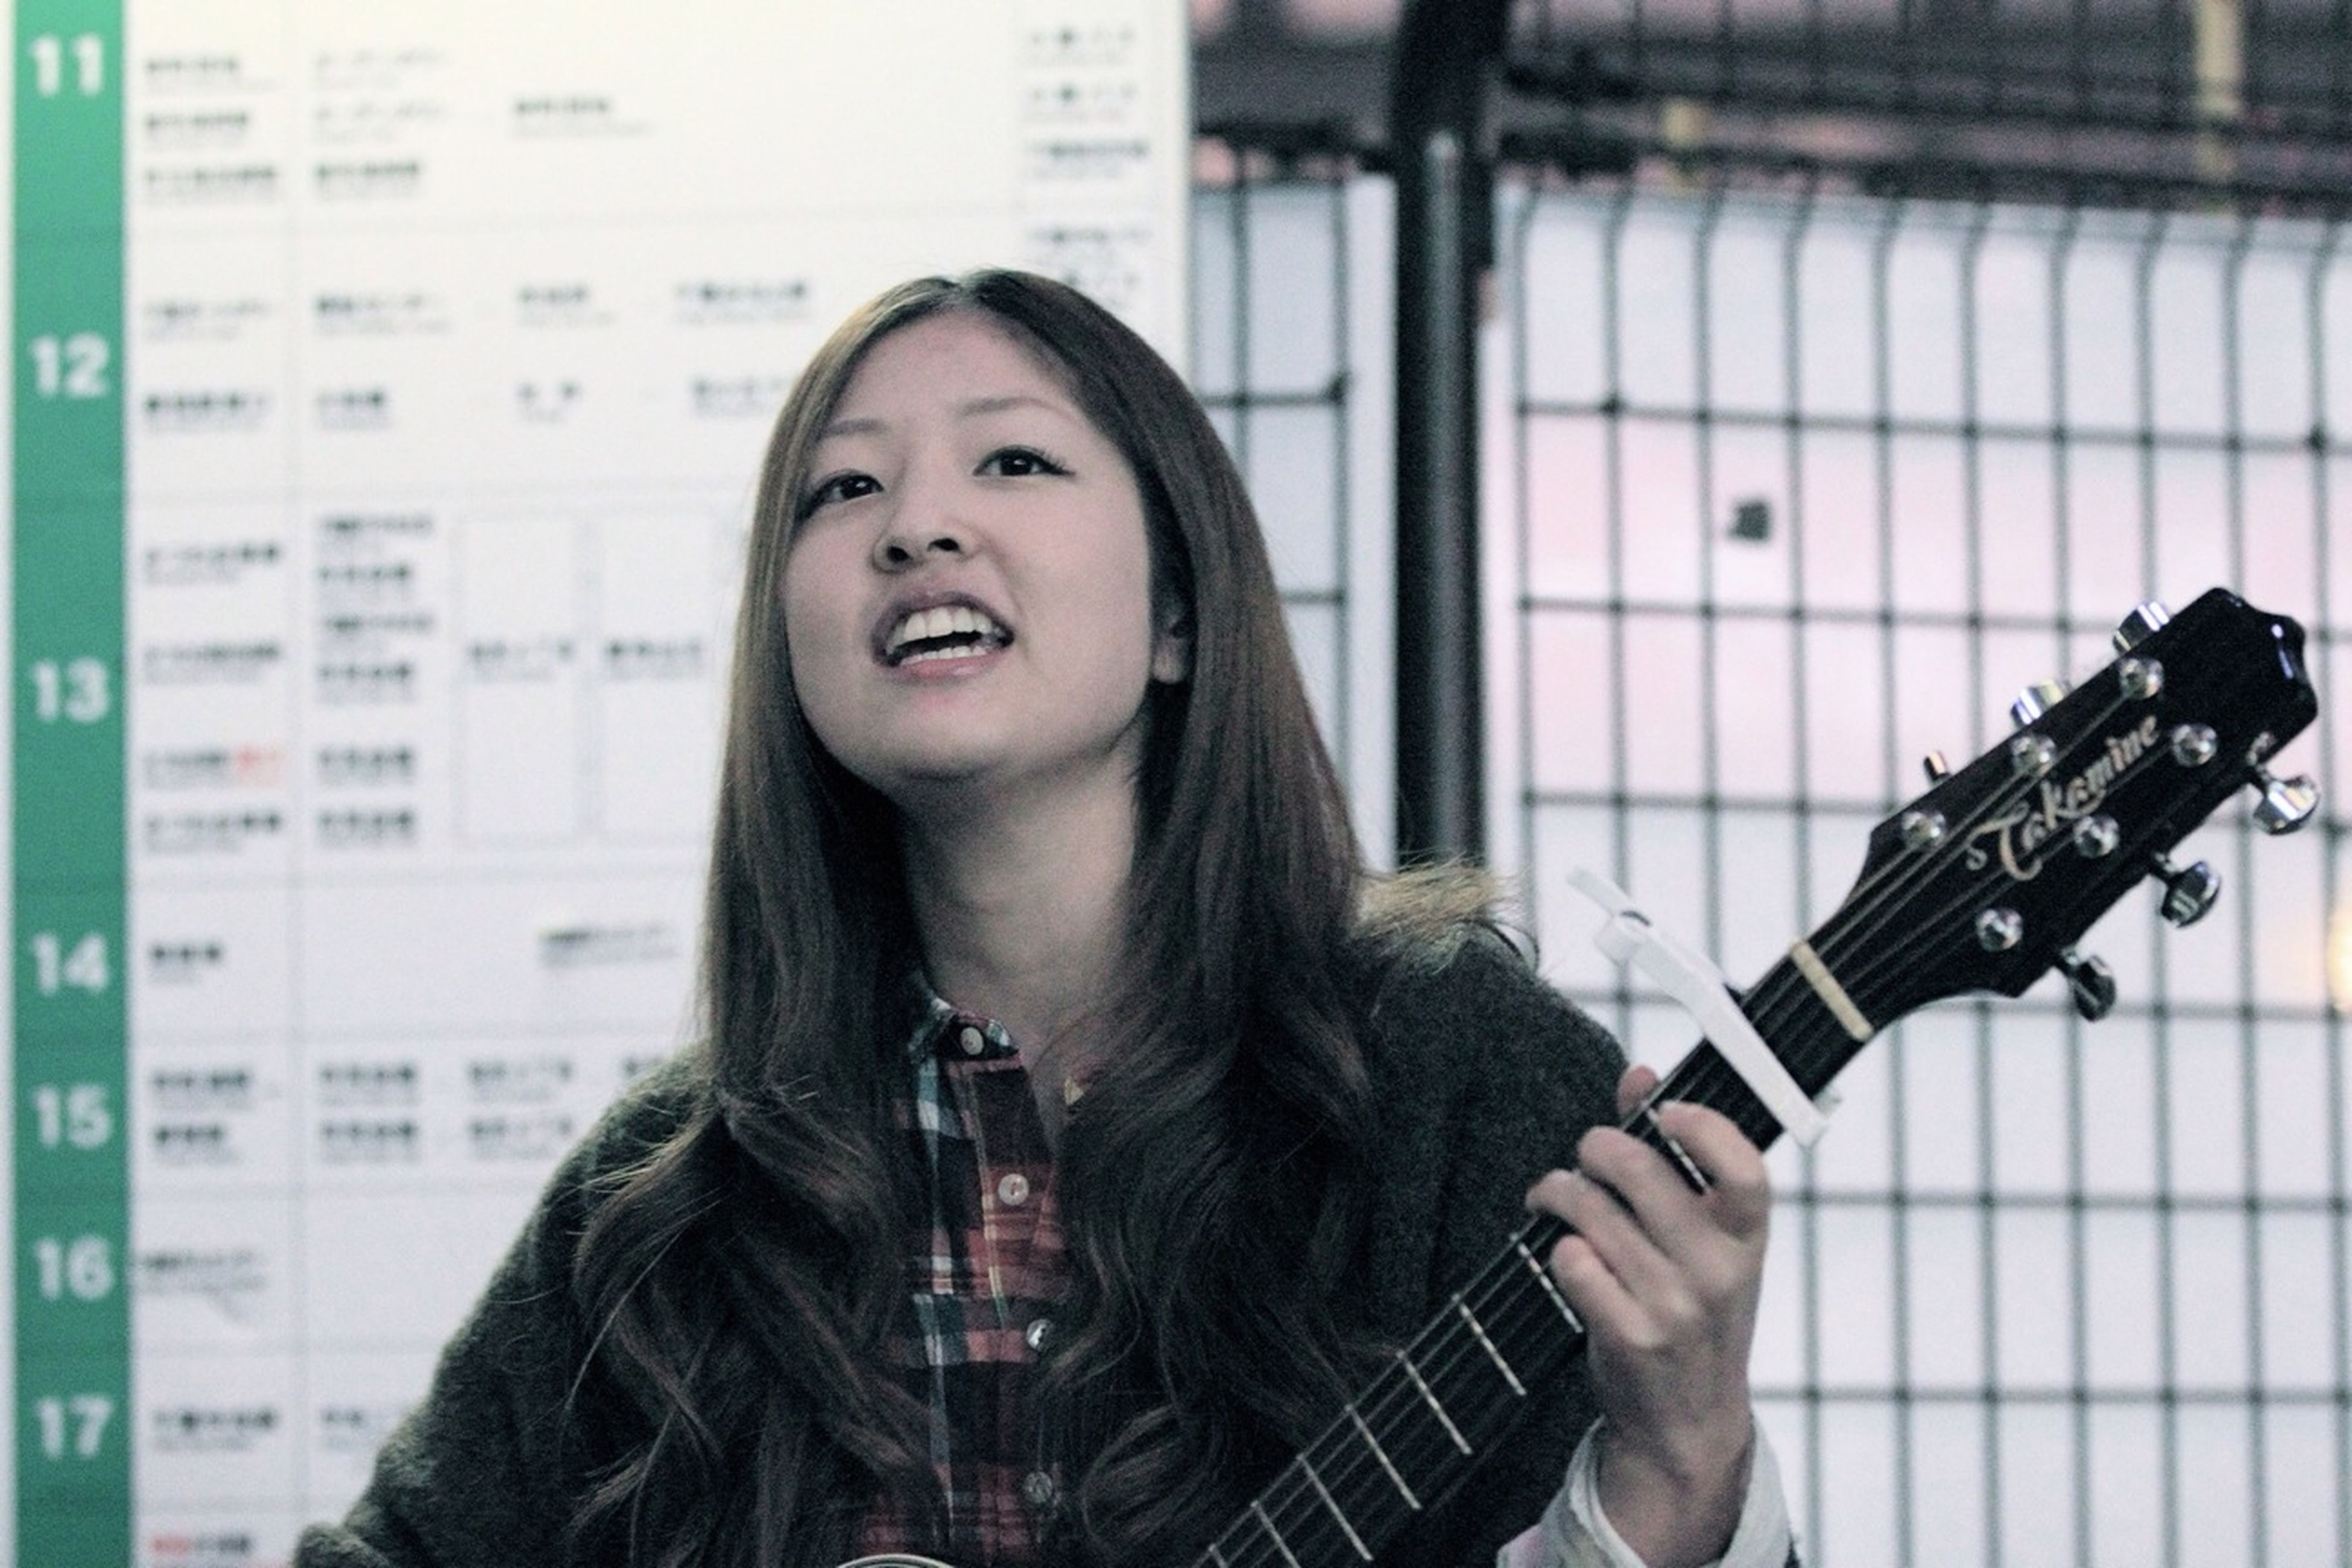 Her Name Is Sayuri Murakami. She Is A Singer-songwriter. She Is Very Good At A Song. She Can Be Known By YouTube. I Think That The Day Which Makes Its TV Debut Is Near.⑶